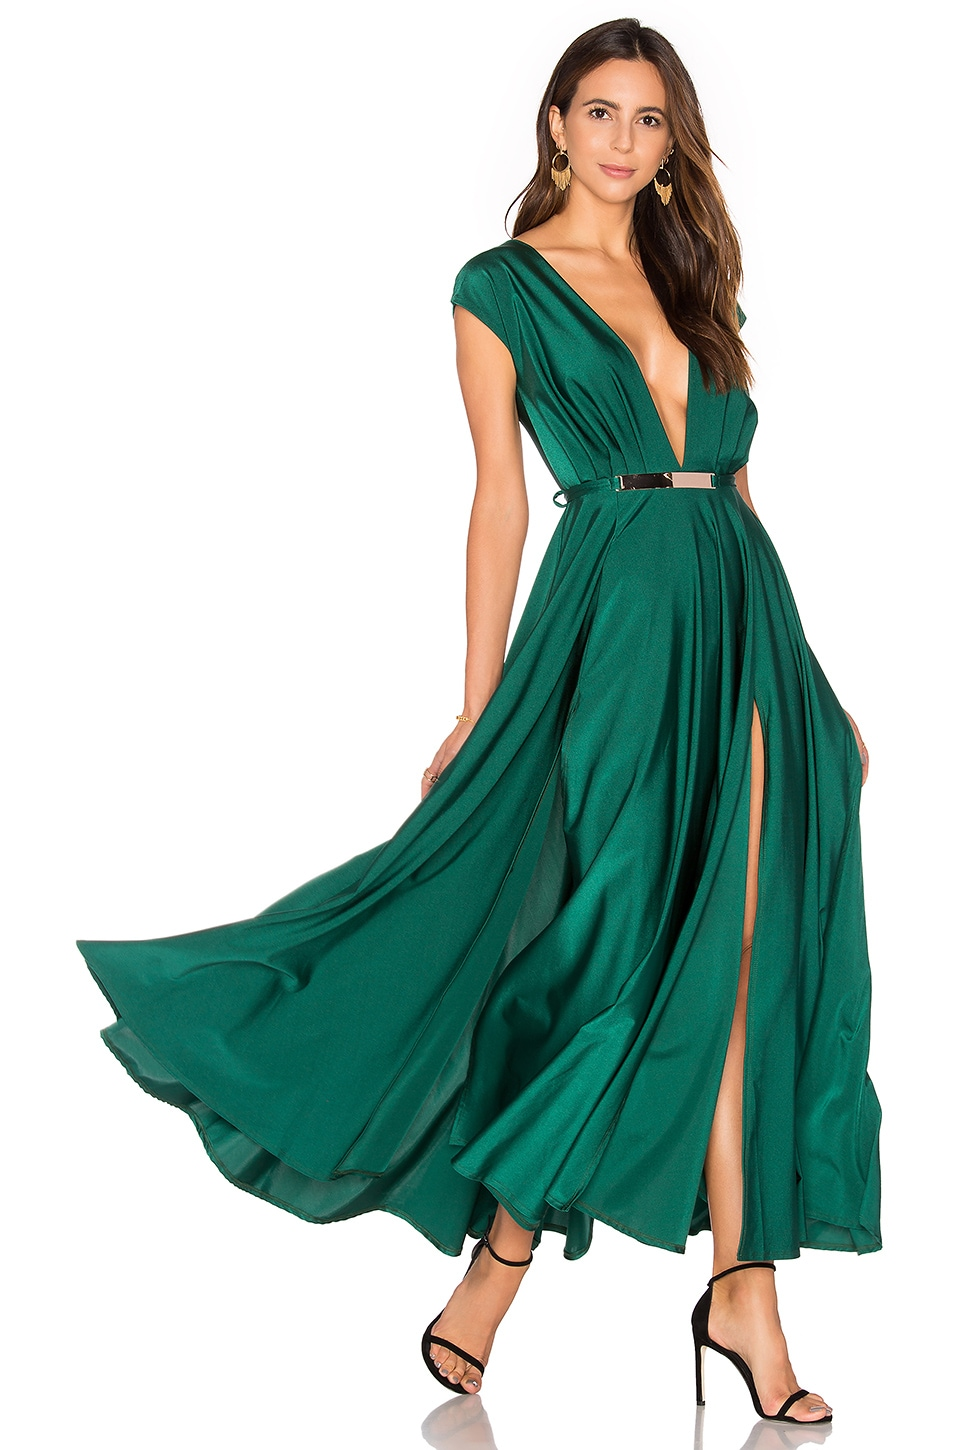 Lurelly Blown Away Dress in Green